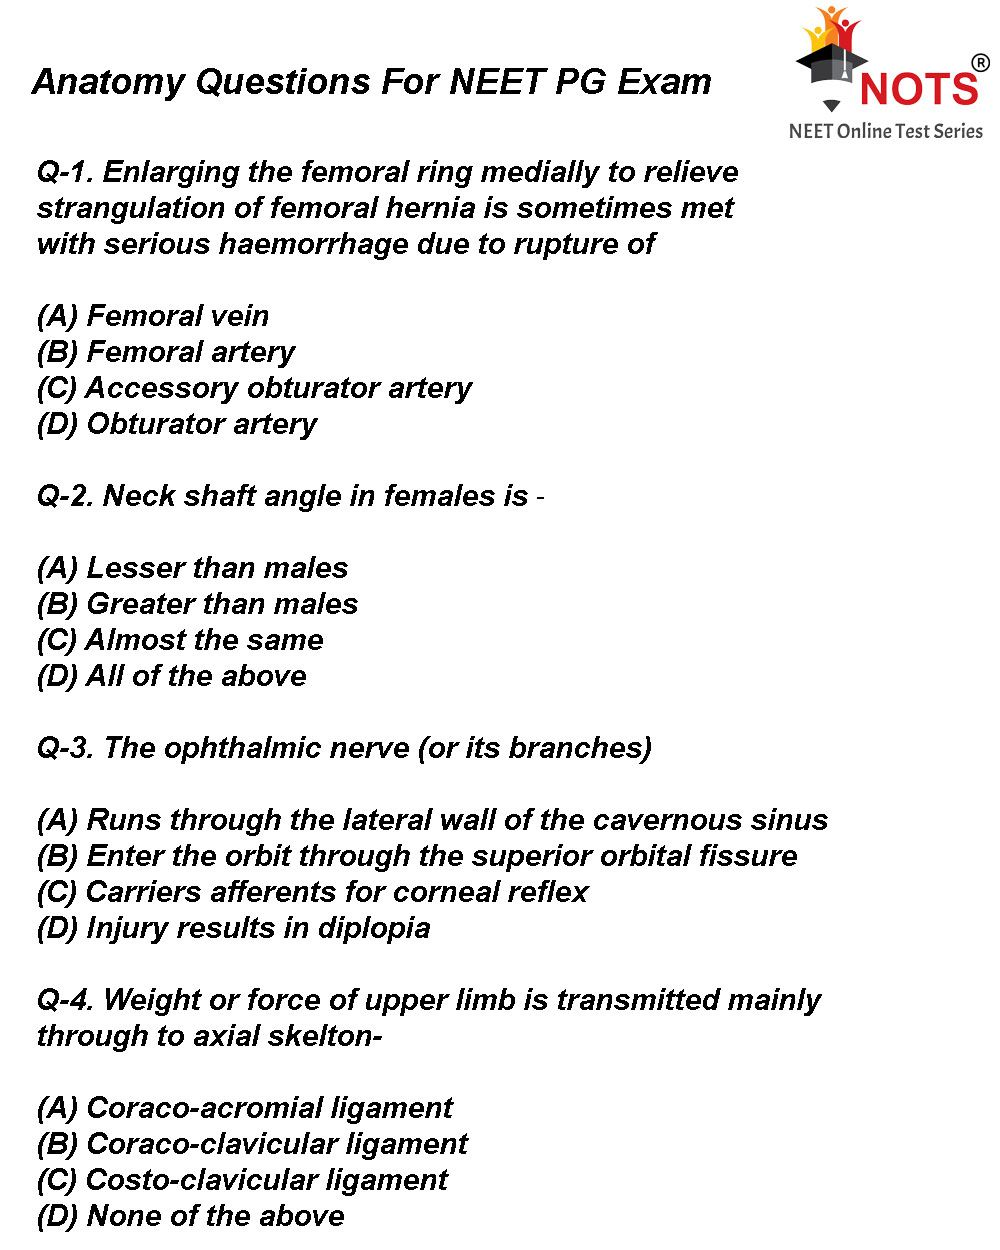 Anatomy Questions For Neet Pg Exam Solve These Questions For